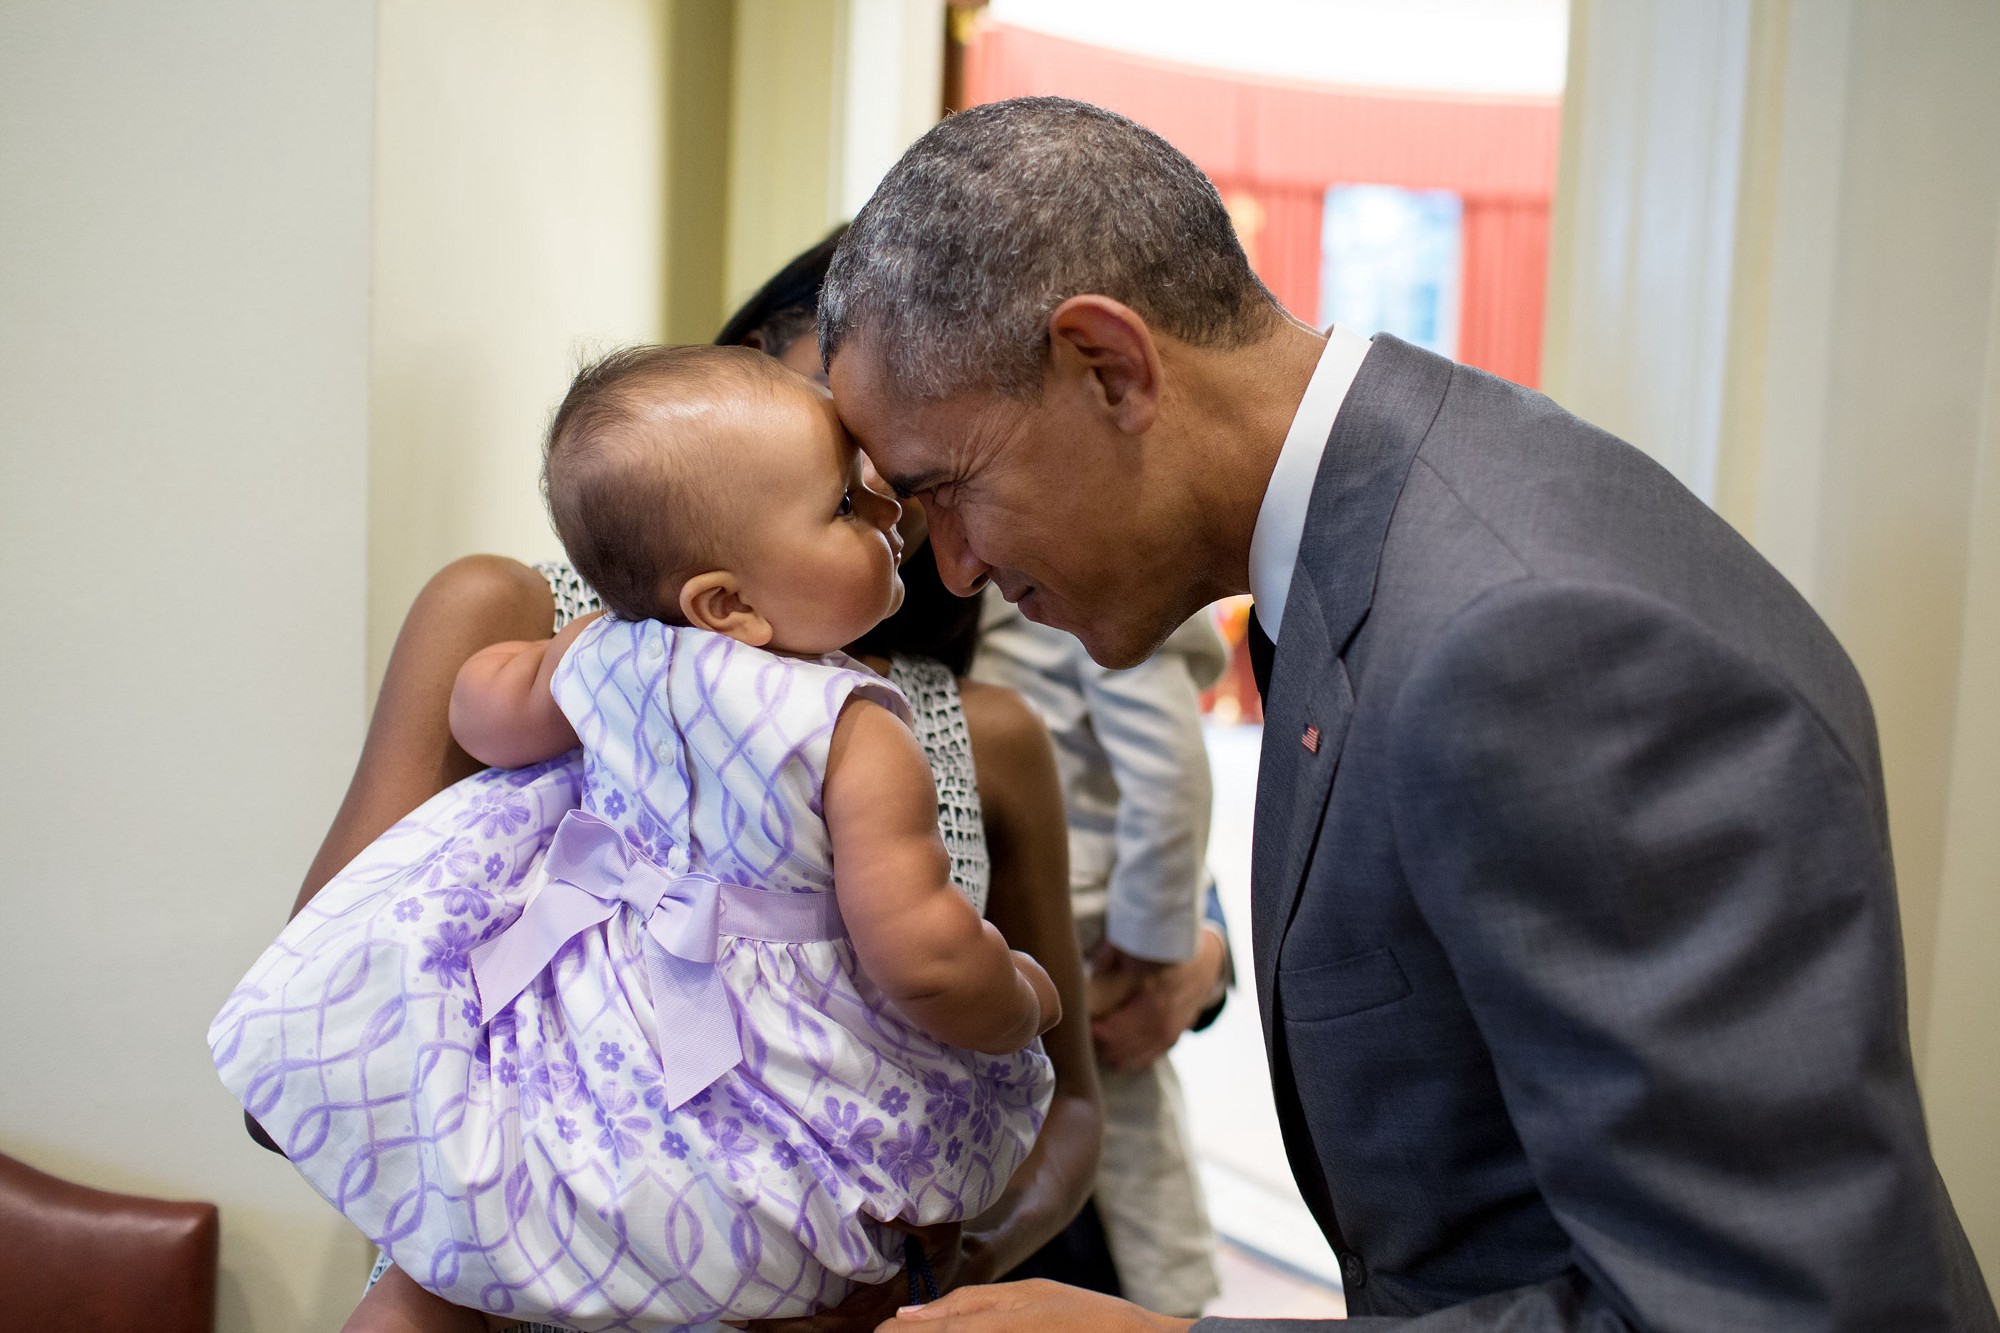 "July 17, 2015 ""The President greets nine-month-old Josephine Gronniger, whose father, Tim Gronniger, brought his family by the Oval Office for a family photo."" (Official White House Photo by Pete Souza)"